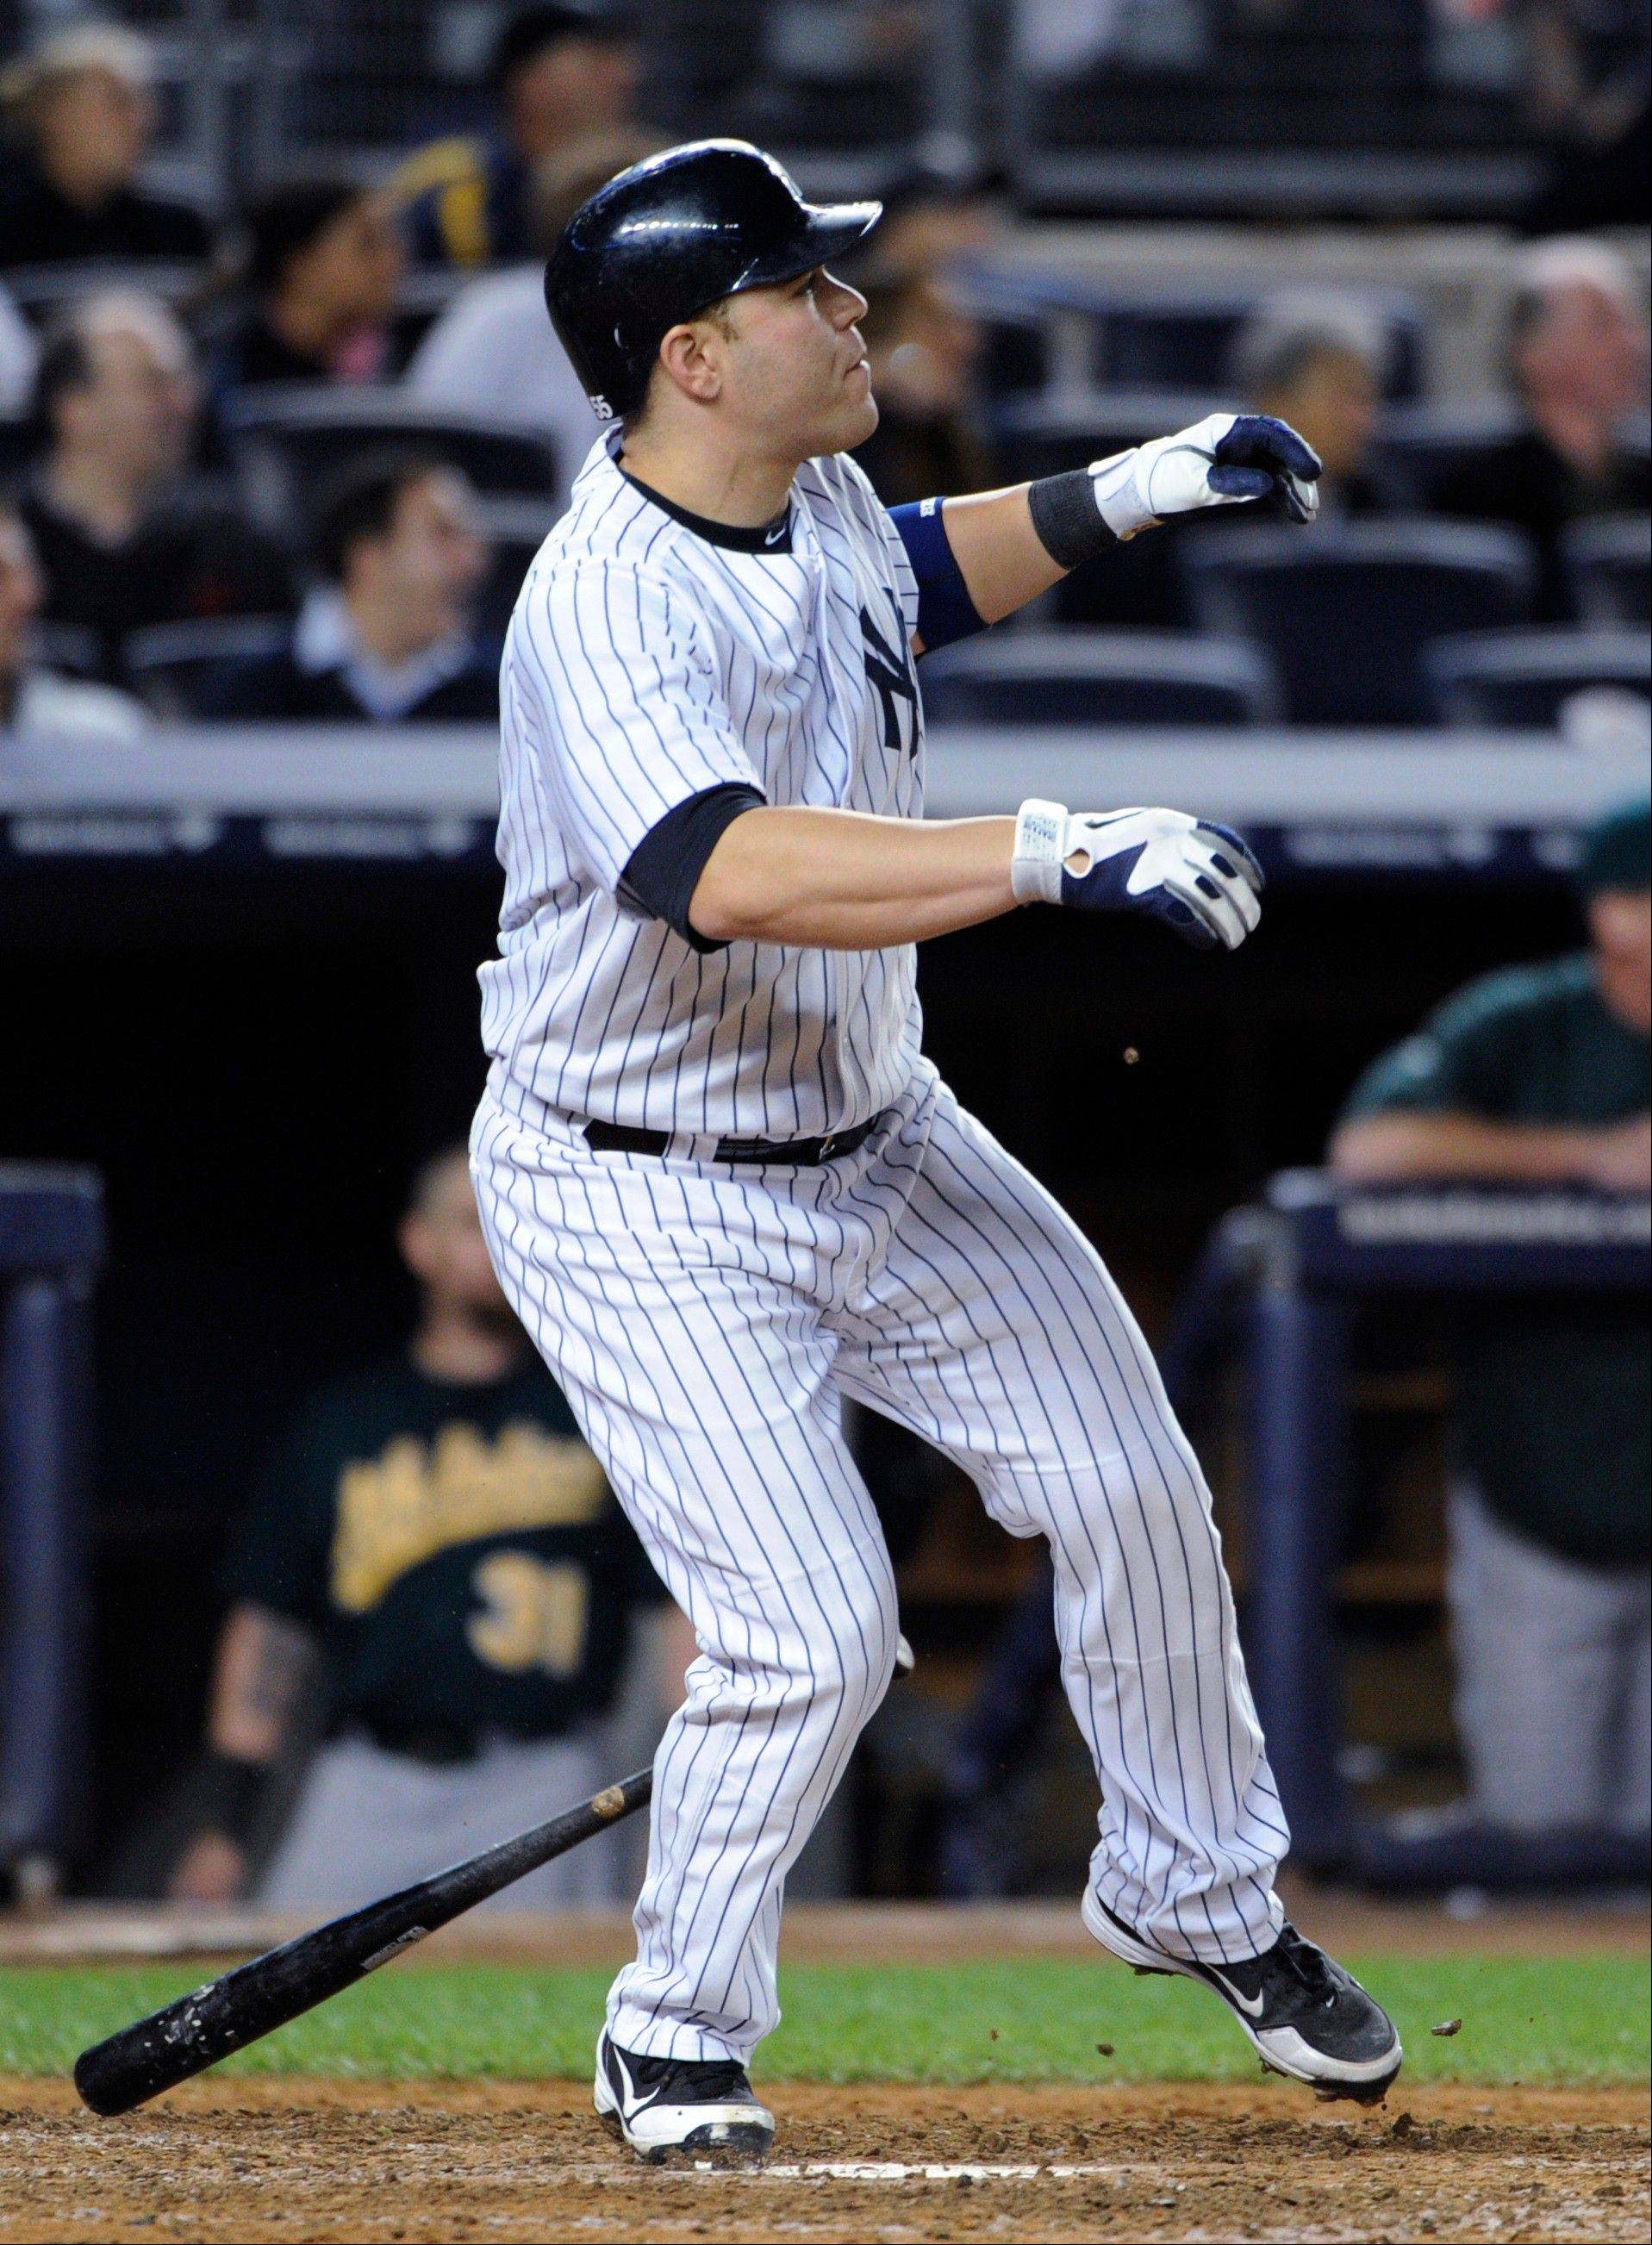 The Yankees' Russell Martin watches his walk-off home run in the 10th inning at home against Oakland.